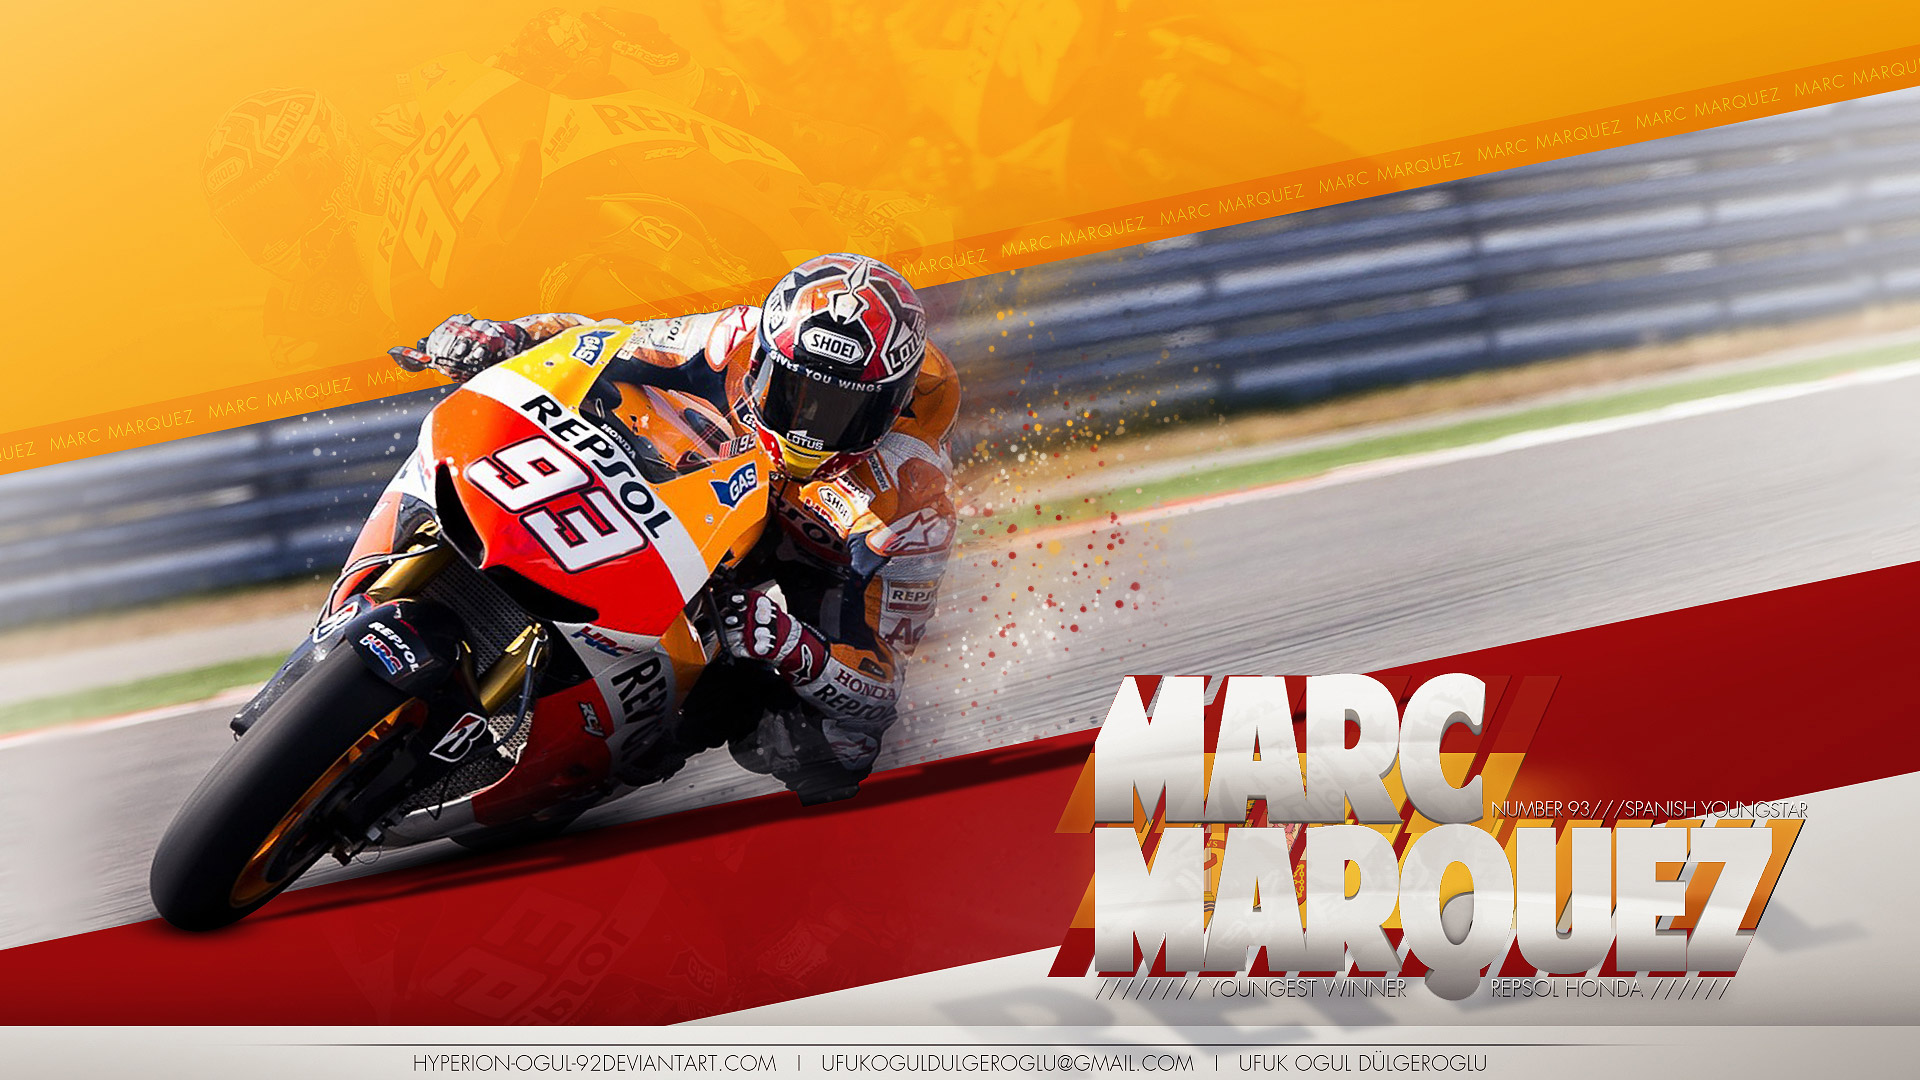 Marc-Marquez-93-Wallpapers-hd-Honda-Repsol-01